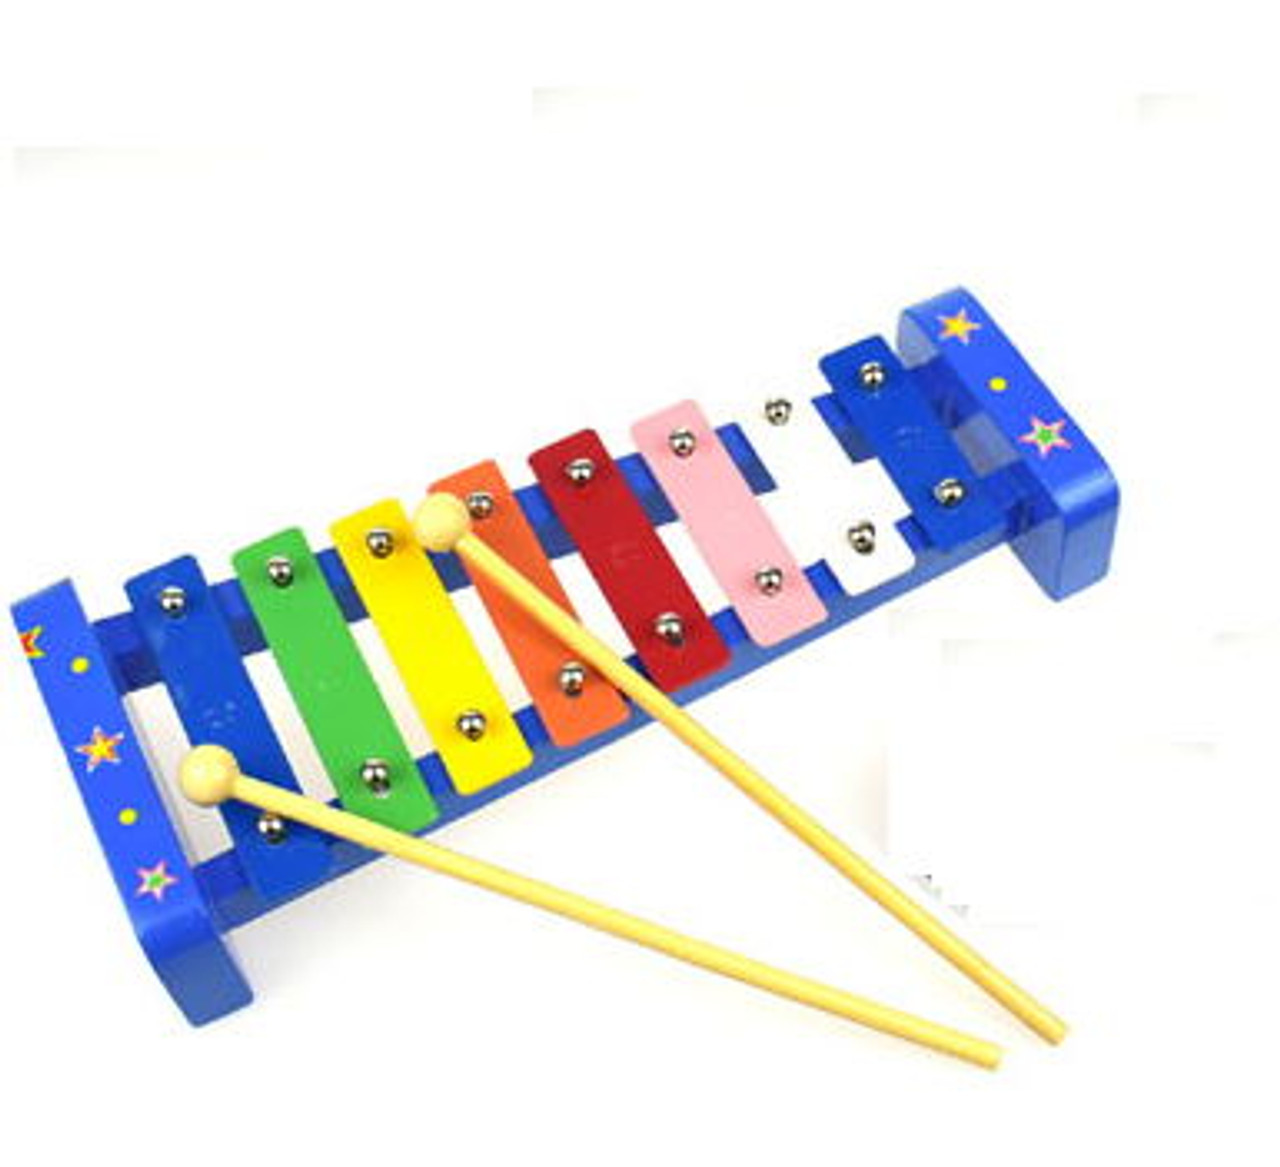 Kaper Kids Metal Xylophone at Baby Barn Discounts This Xylophone is a high quality instrument for children, with a wooden base and metal keys. Perfect for play time & learning the basics music.